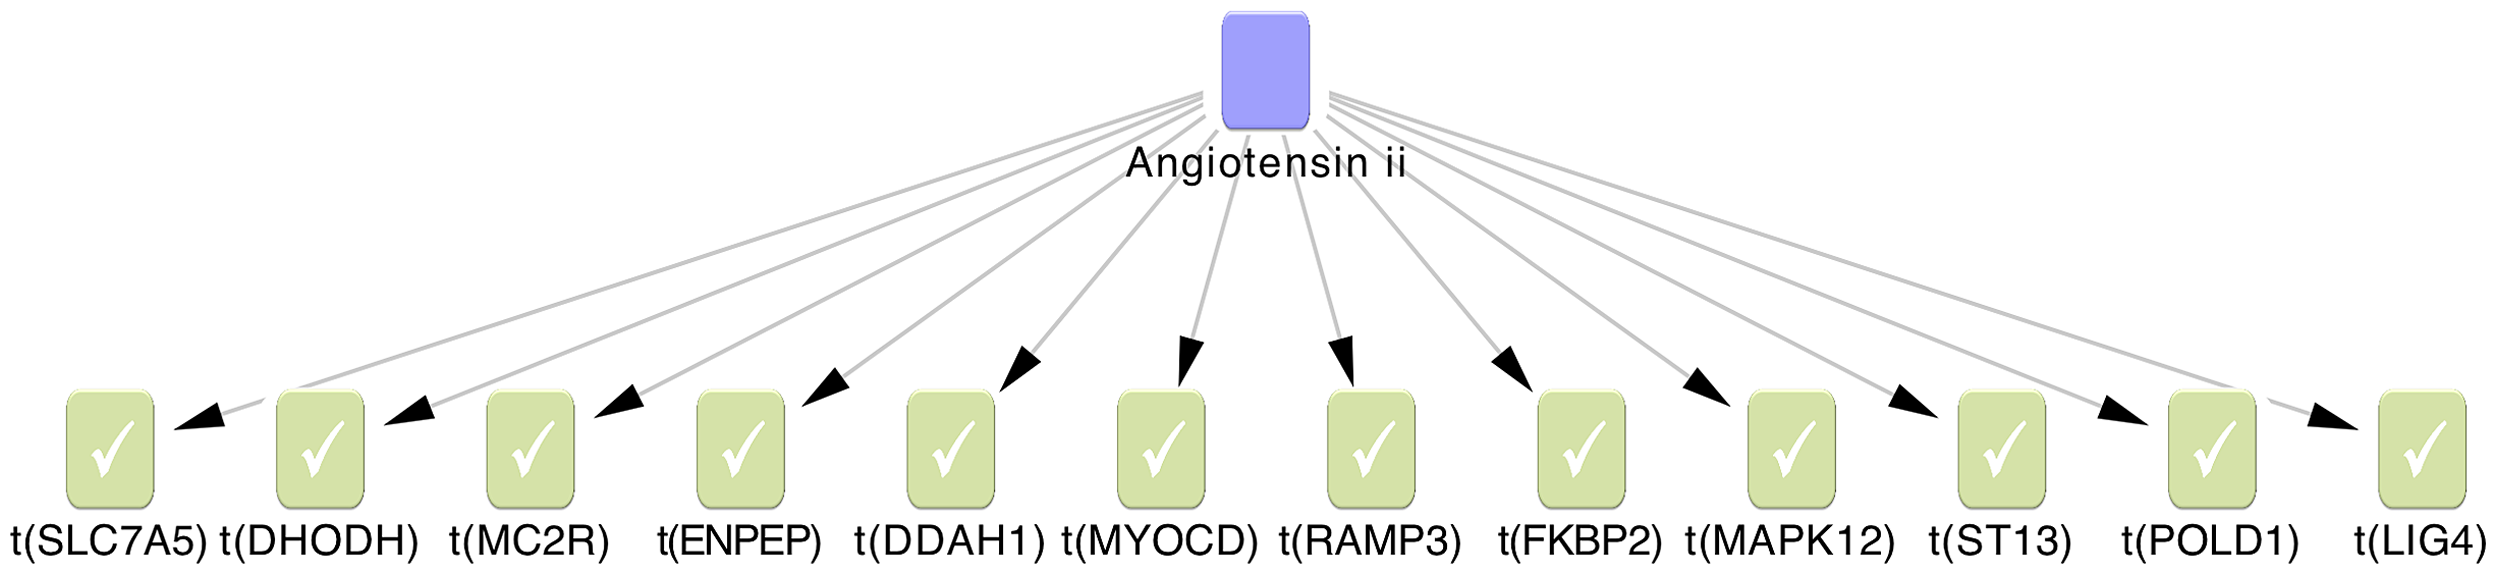 The Angiotensin II regulatory network was identified by causal reasoning from 138 genes associated with pain sensitivity.